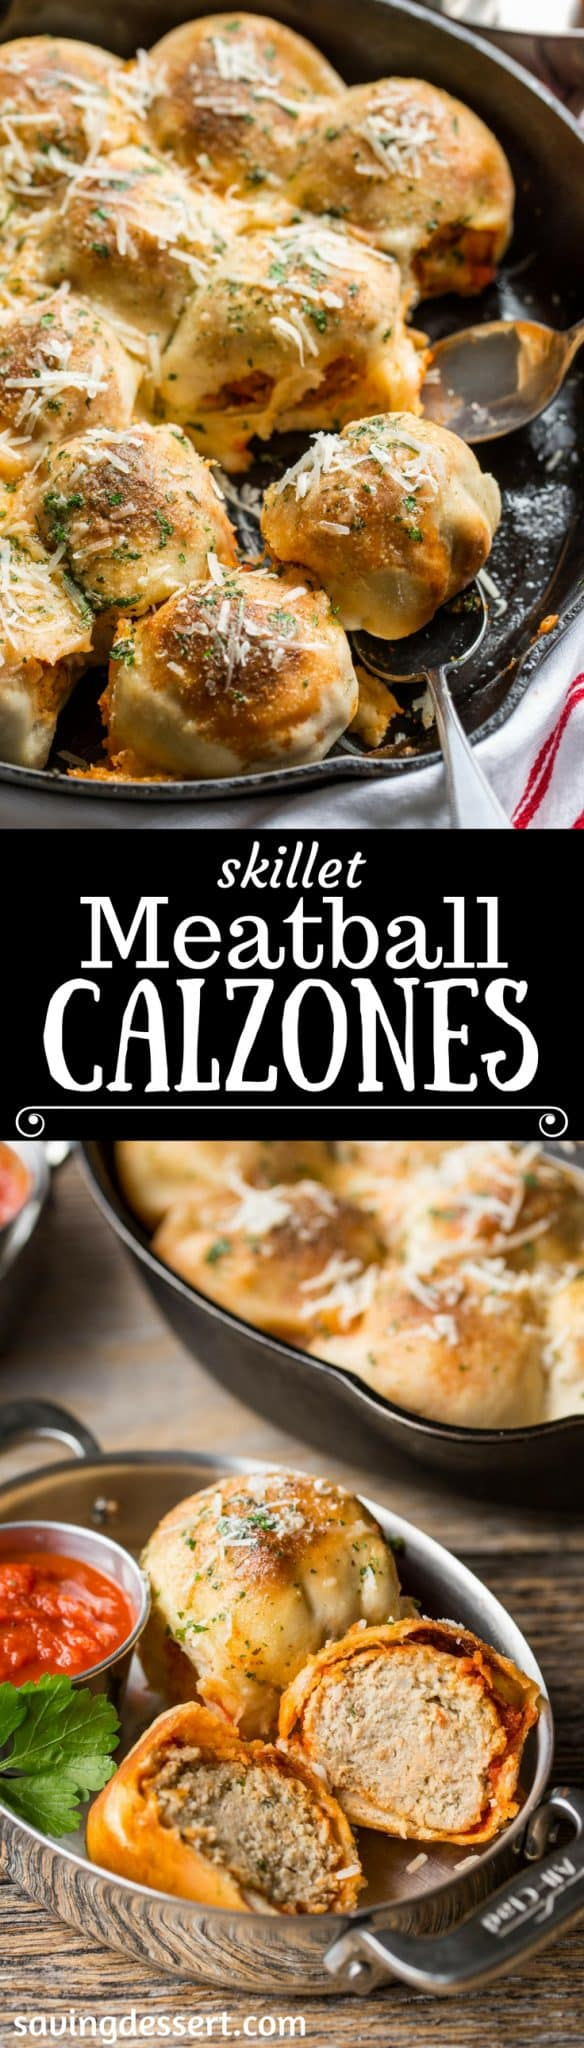 Skillet Meatball Calzones with Herbed Butter Sauce. Calling all calzone, pizza and meatballs lovers, have we got the perfect recipe for you! savingdessert.com #pizza #calzone #meatball #appetizer #savingroomfordessert